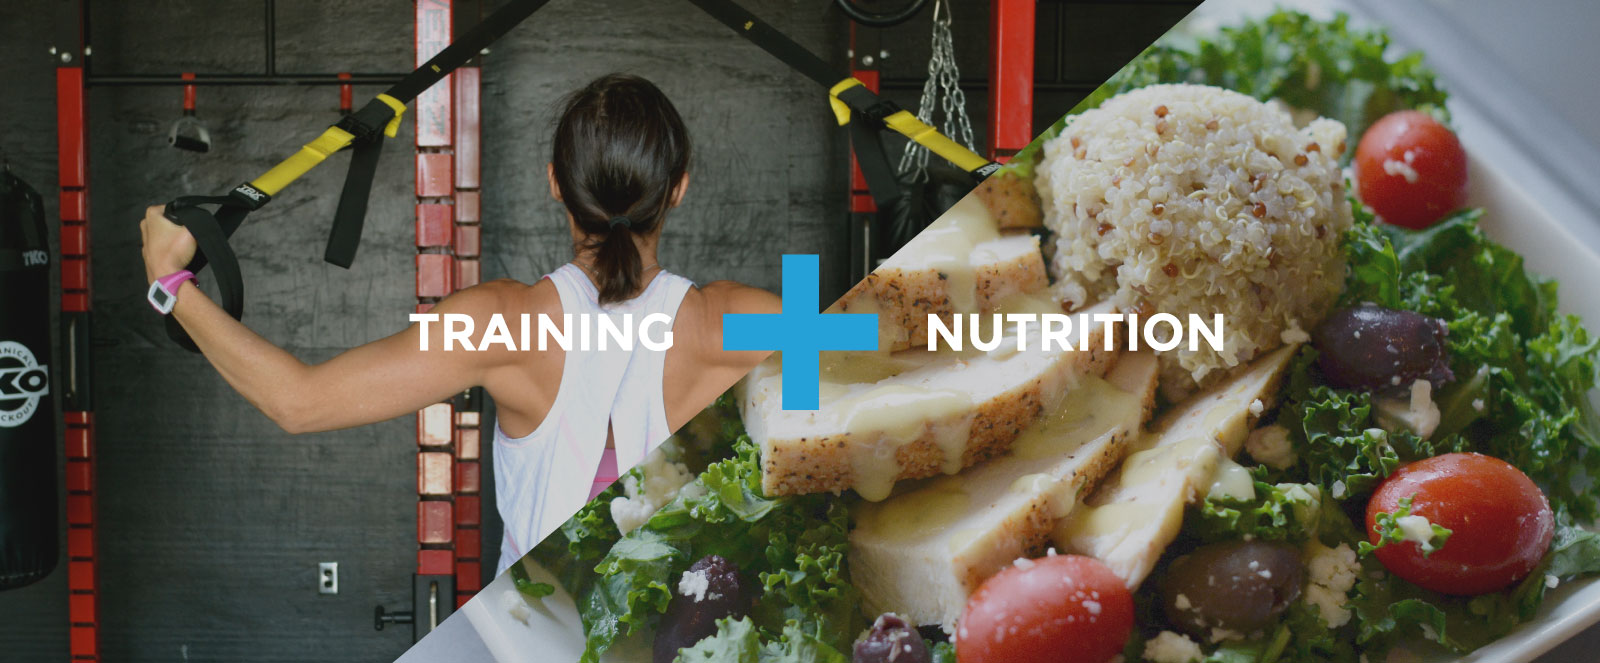 training-nutrition-feature